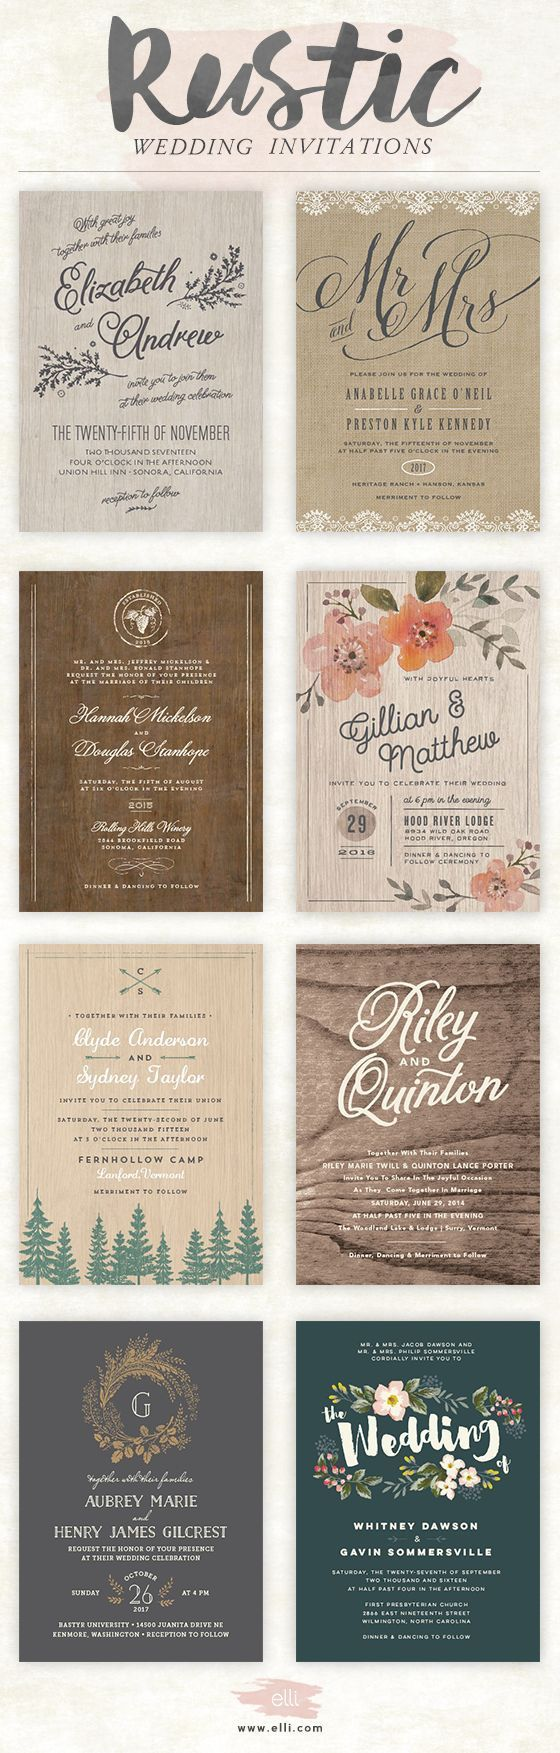 Rustic wedding invitations || Bella Collina Weddings